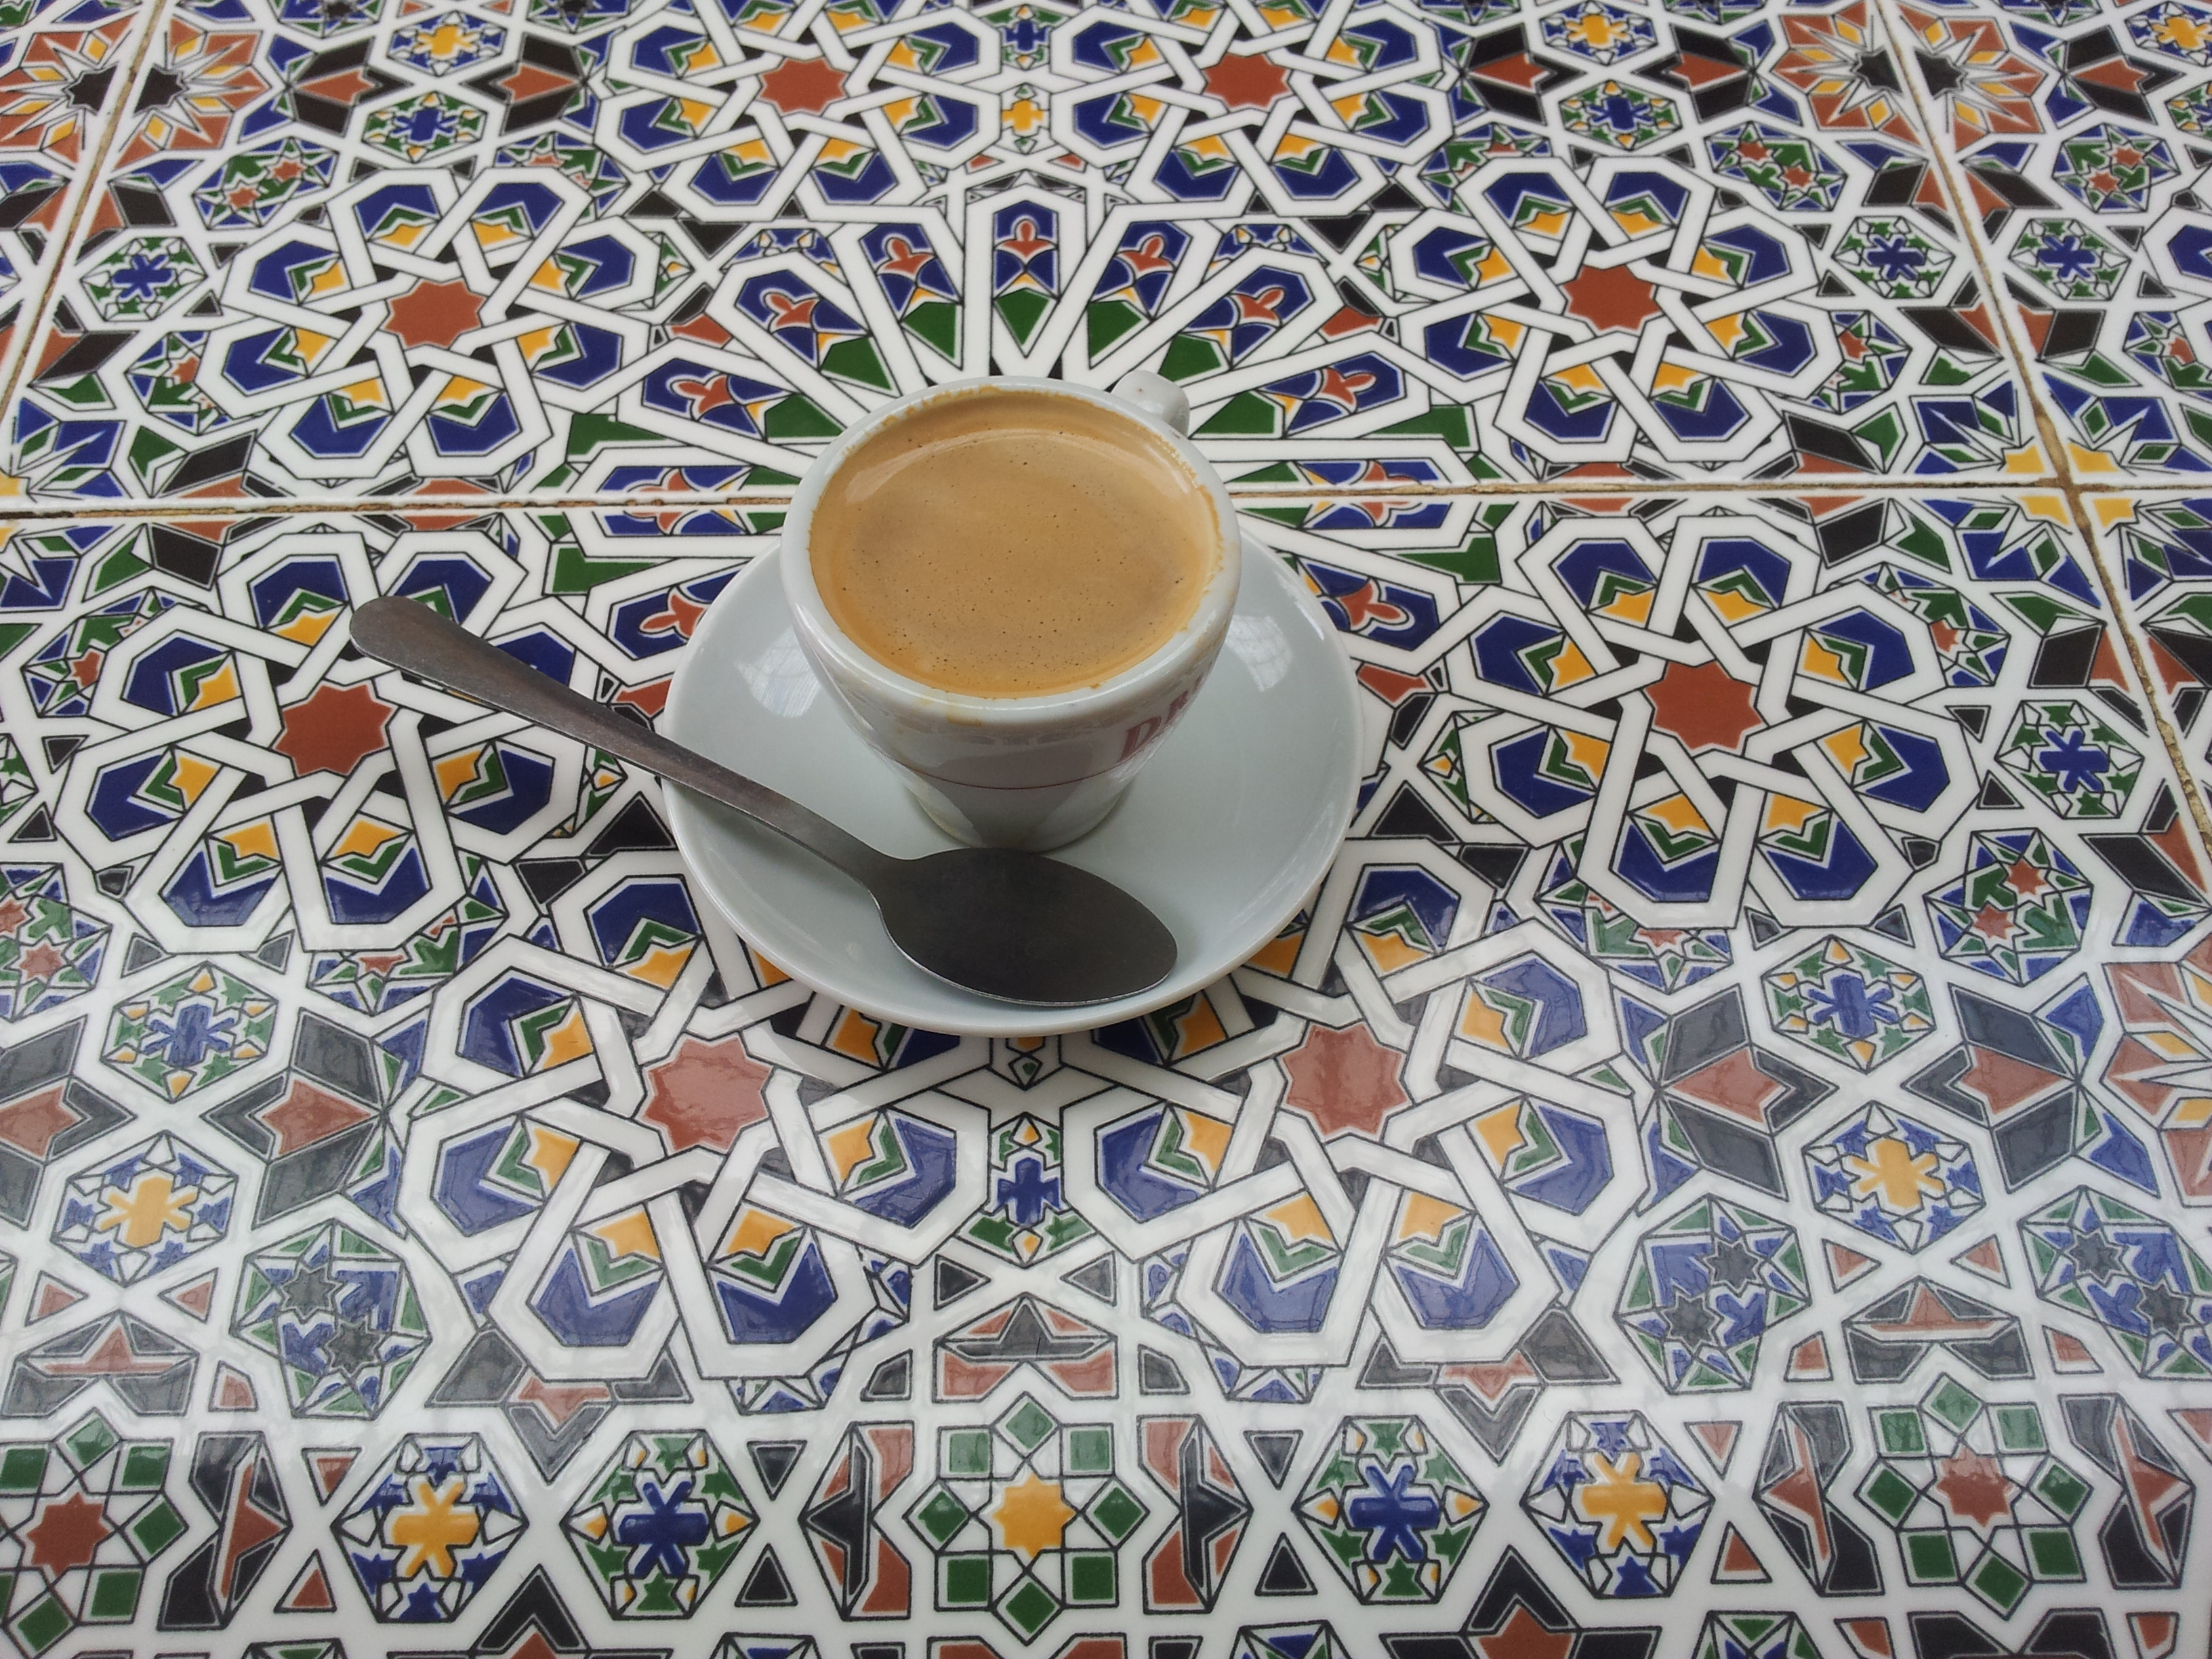 Islamic table, arabic coffee. Bristo